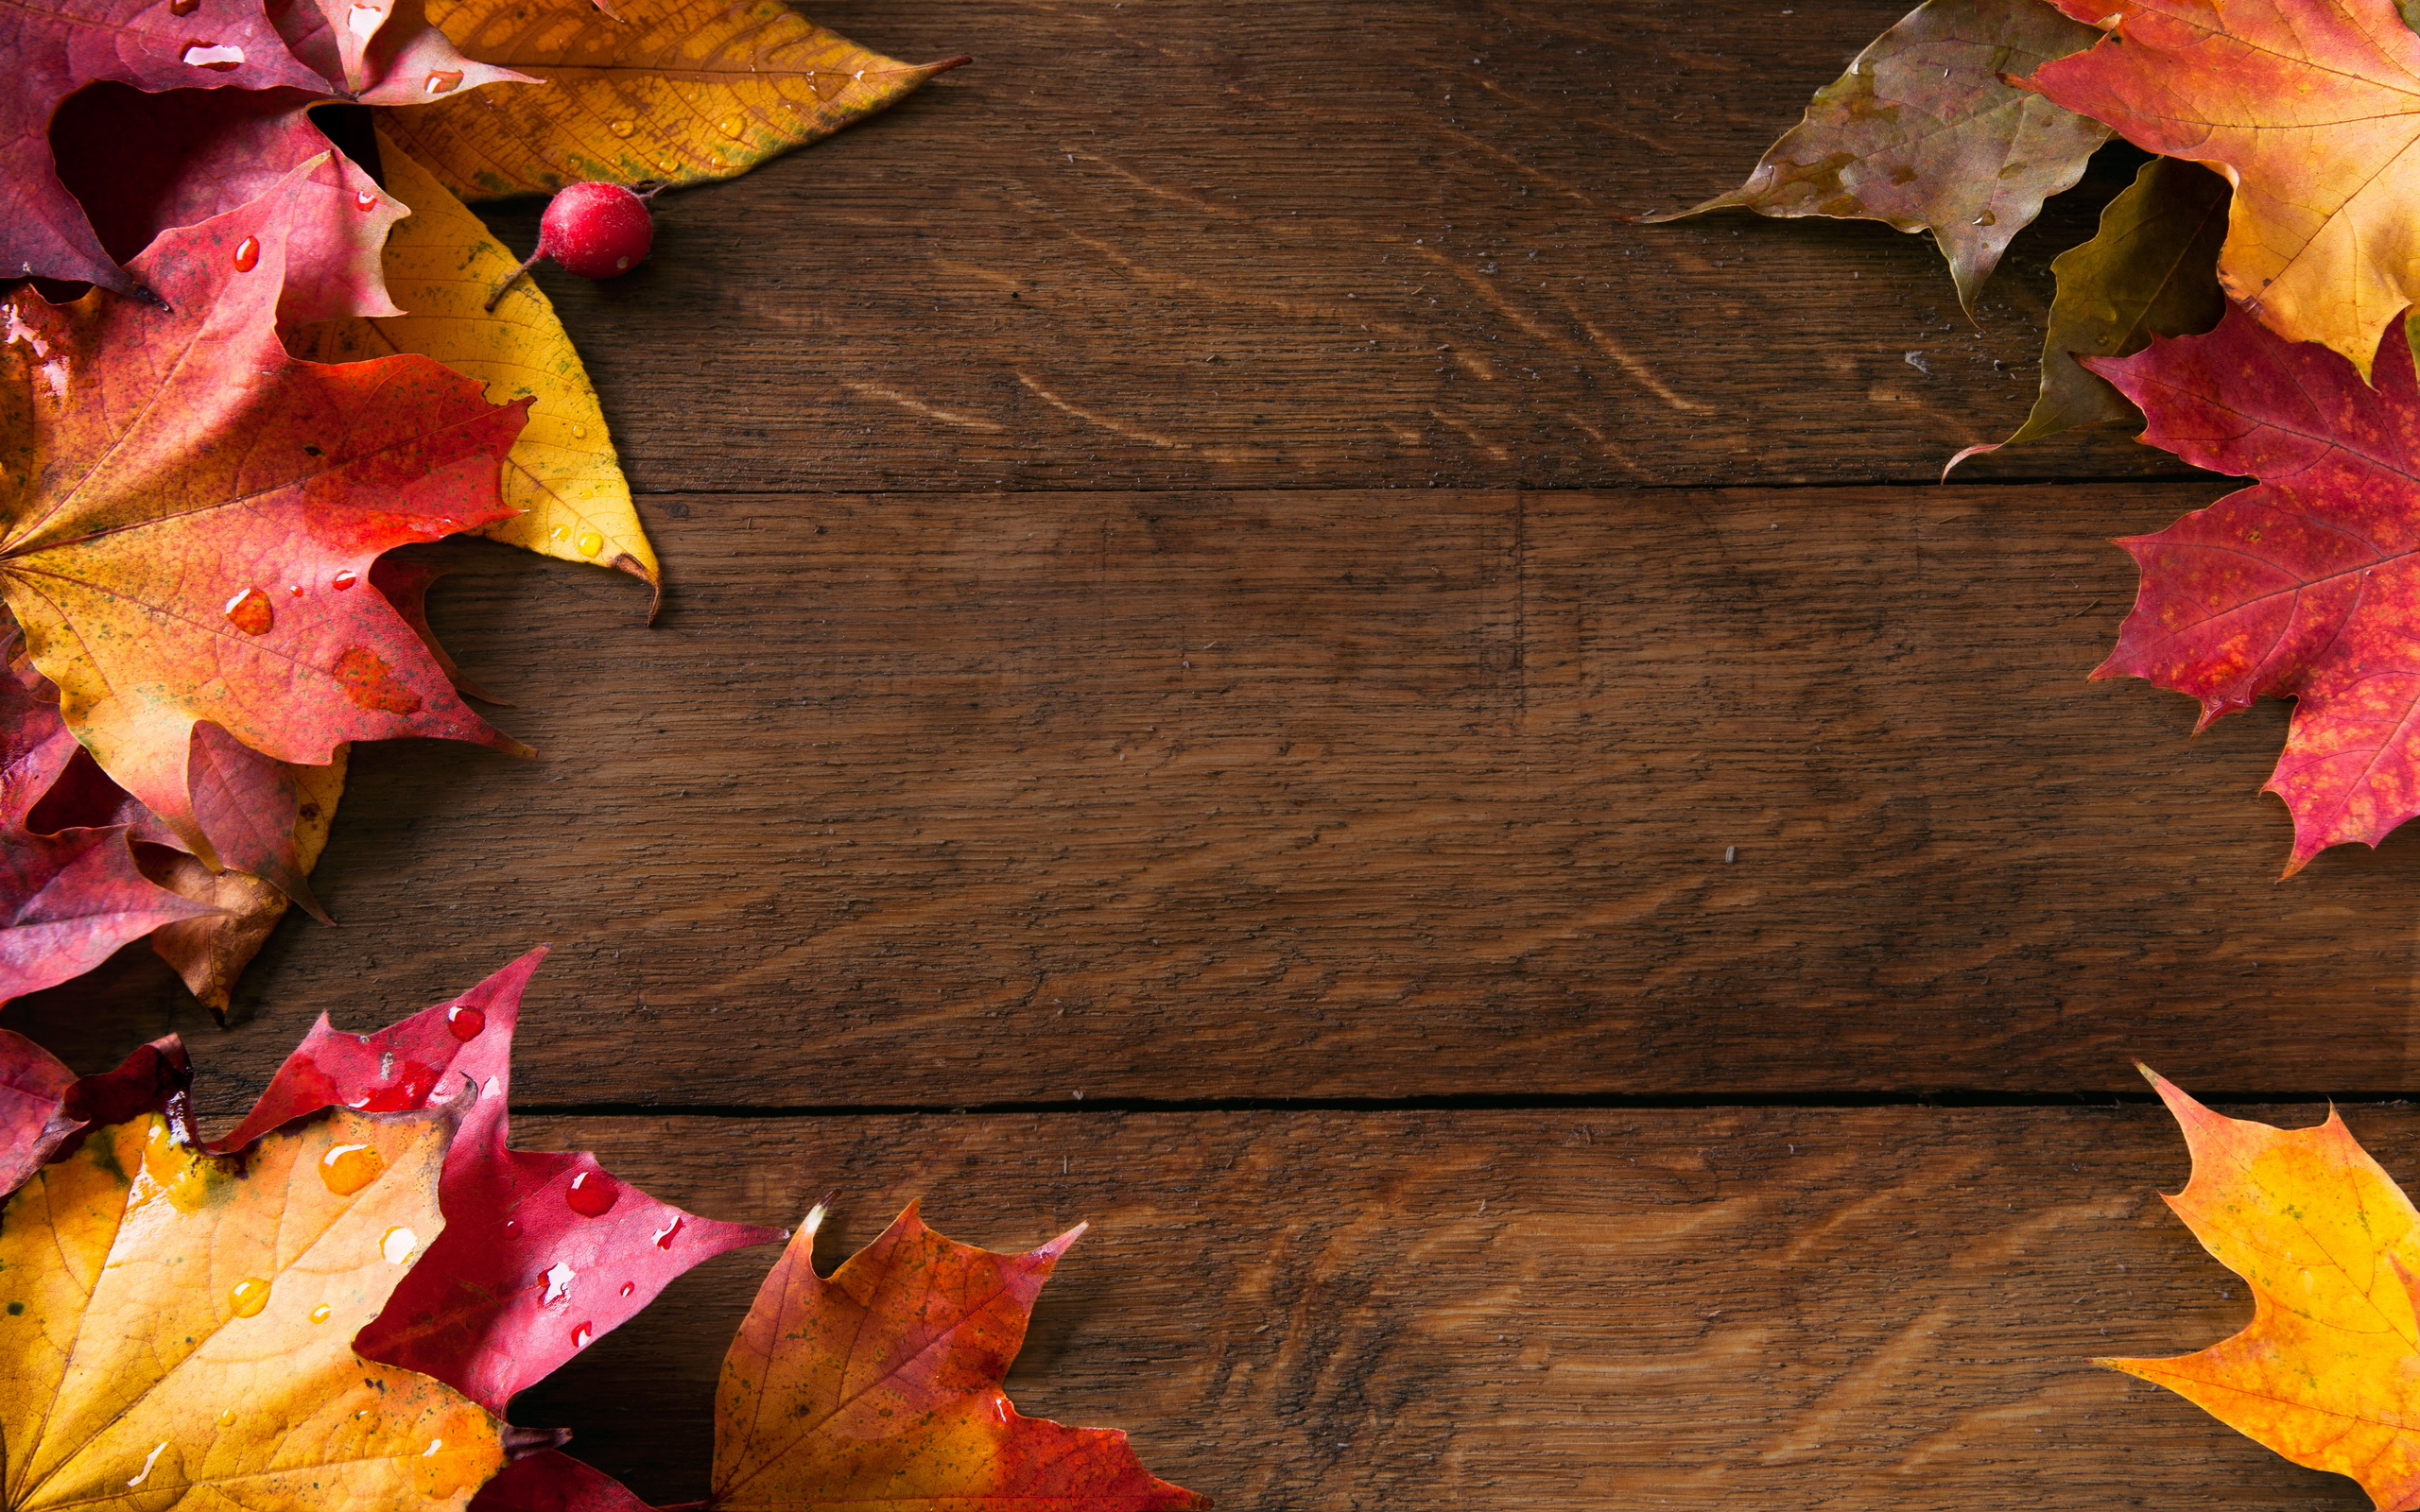 Fall Backgrounds Pictures Images